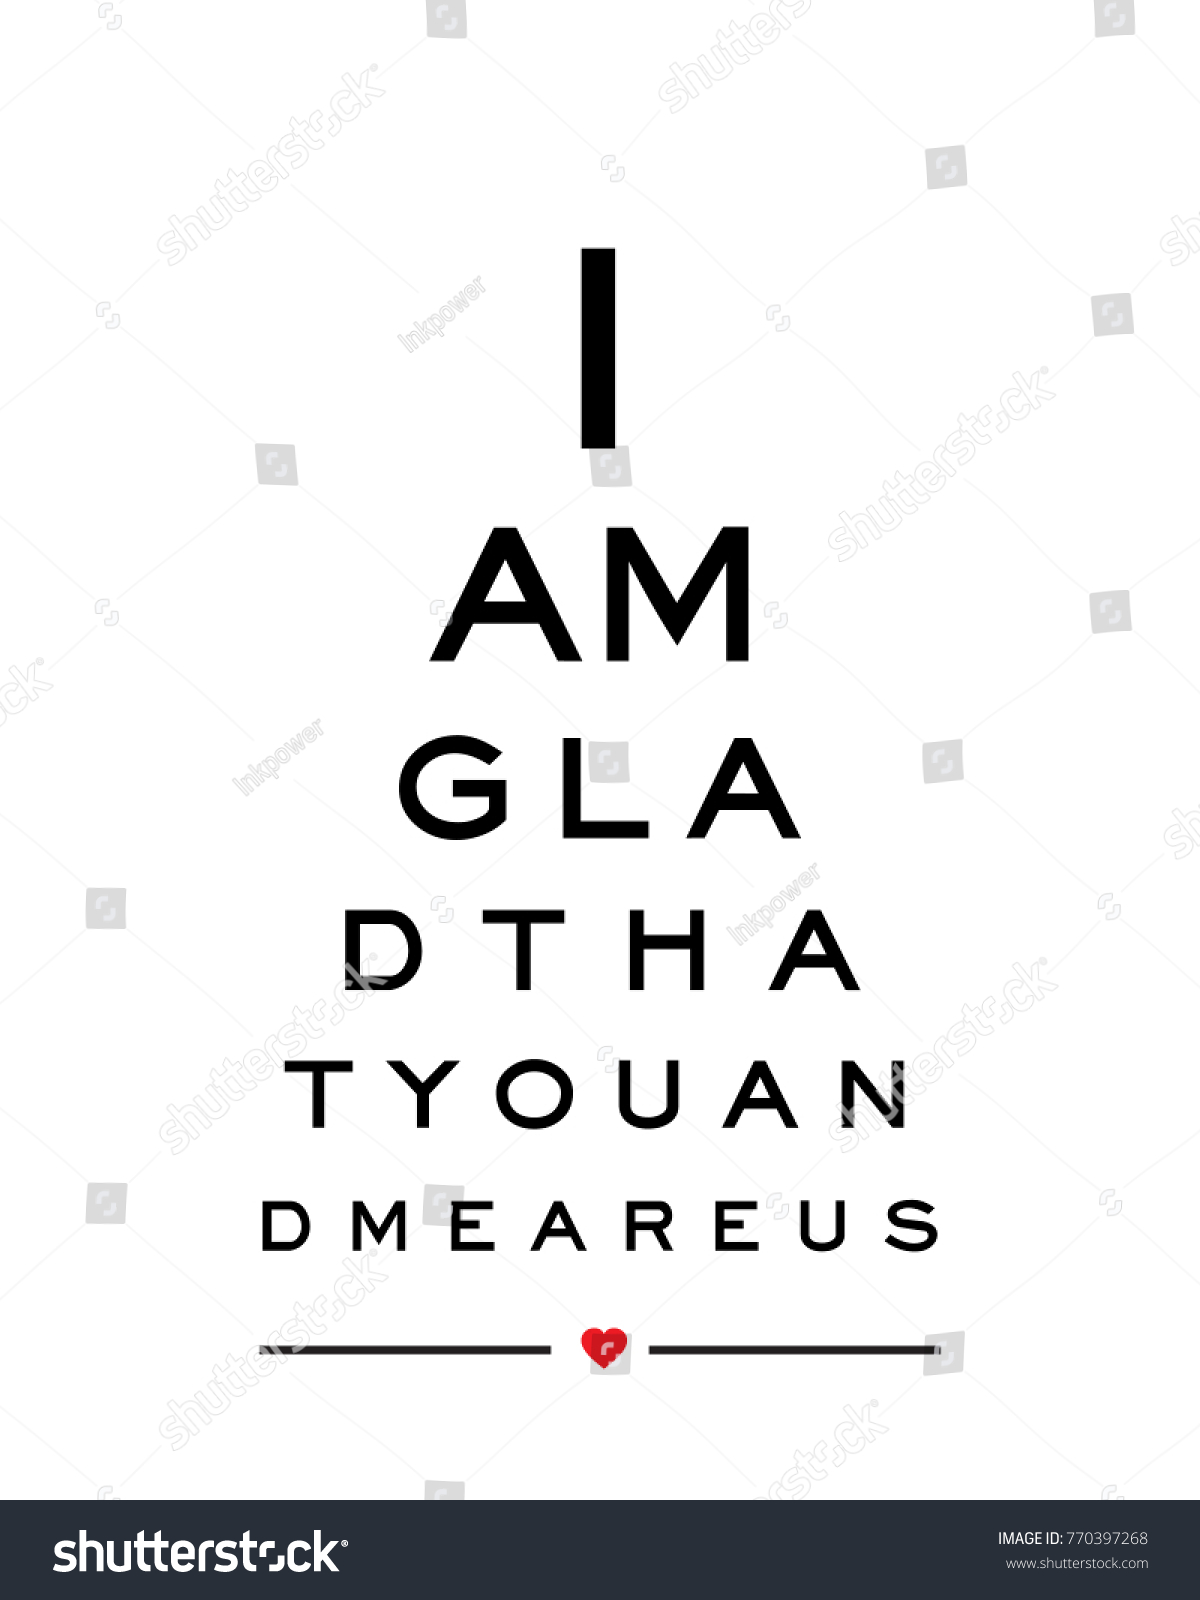 Eye chart snellen wall art print stock vector 770397268 shutterstock eye chart snellen wall art print design vector for i am glad that you and me geenschuldenfo Choice Image